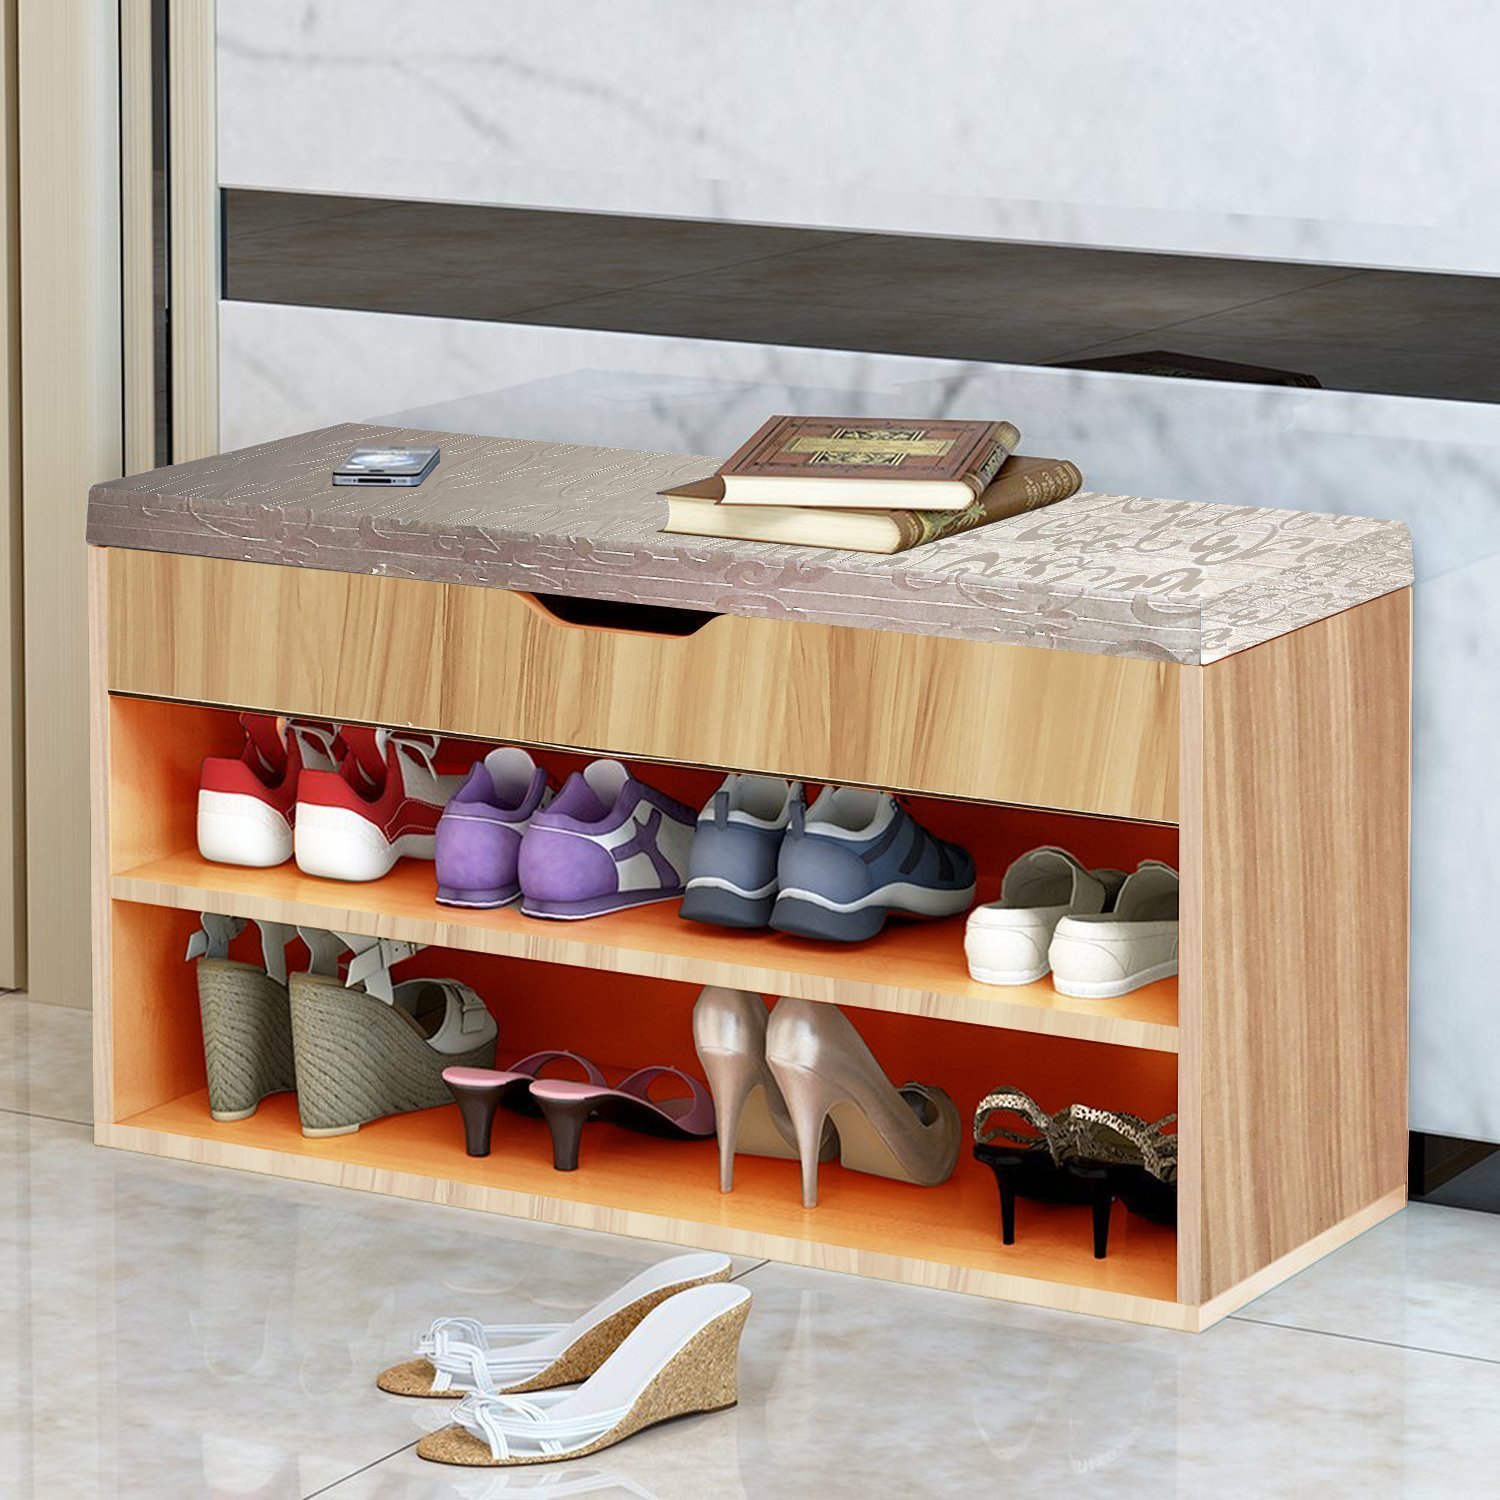 DL Furniture   Large Solid Wood Shoe Rack Organizer Storage Shelf Ottoman  Seat | Classic Design